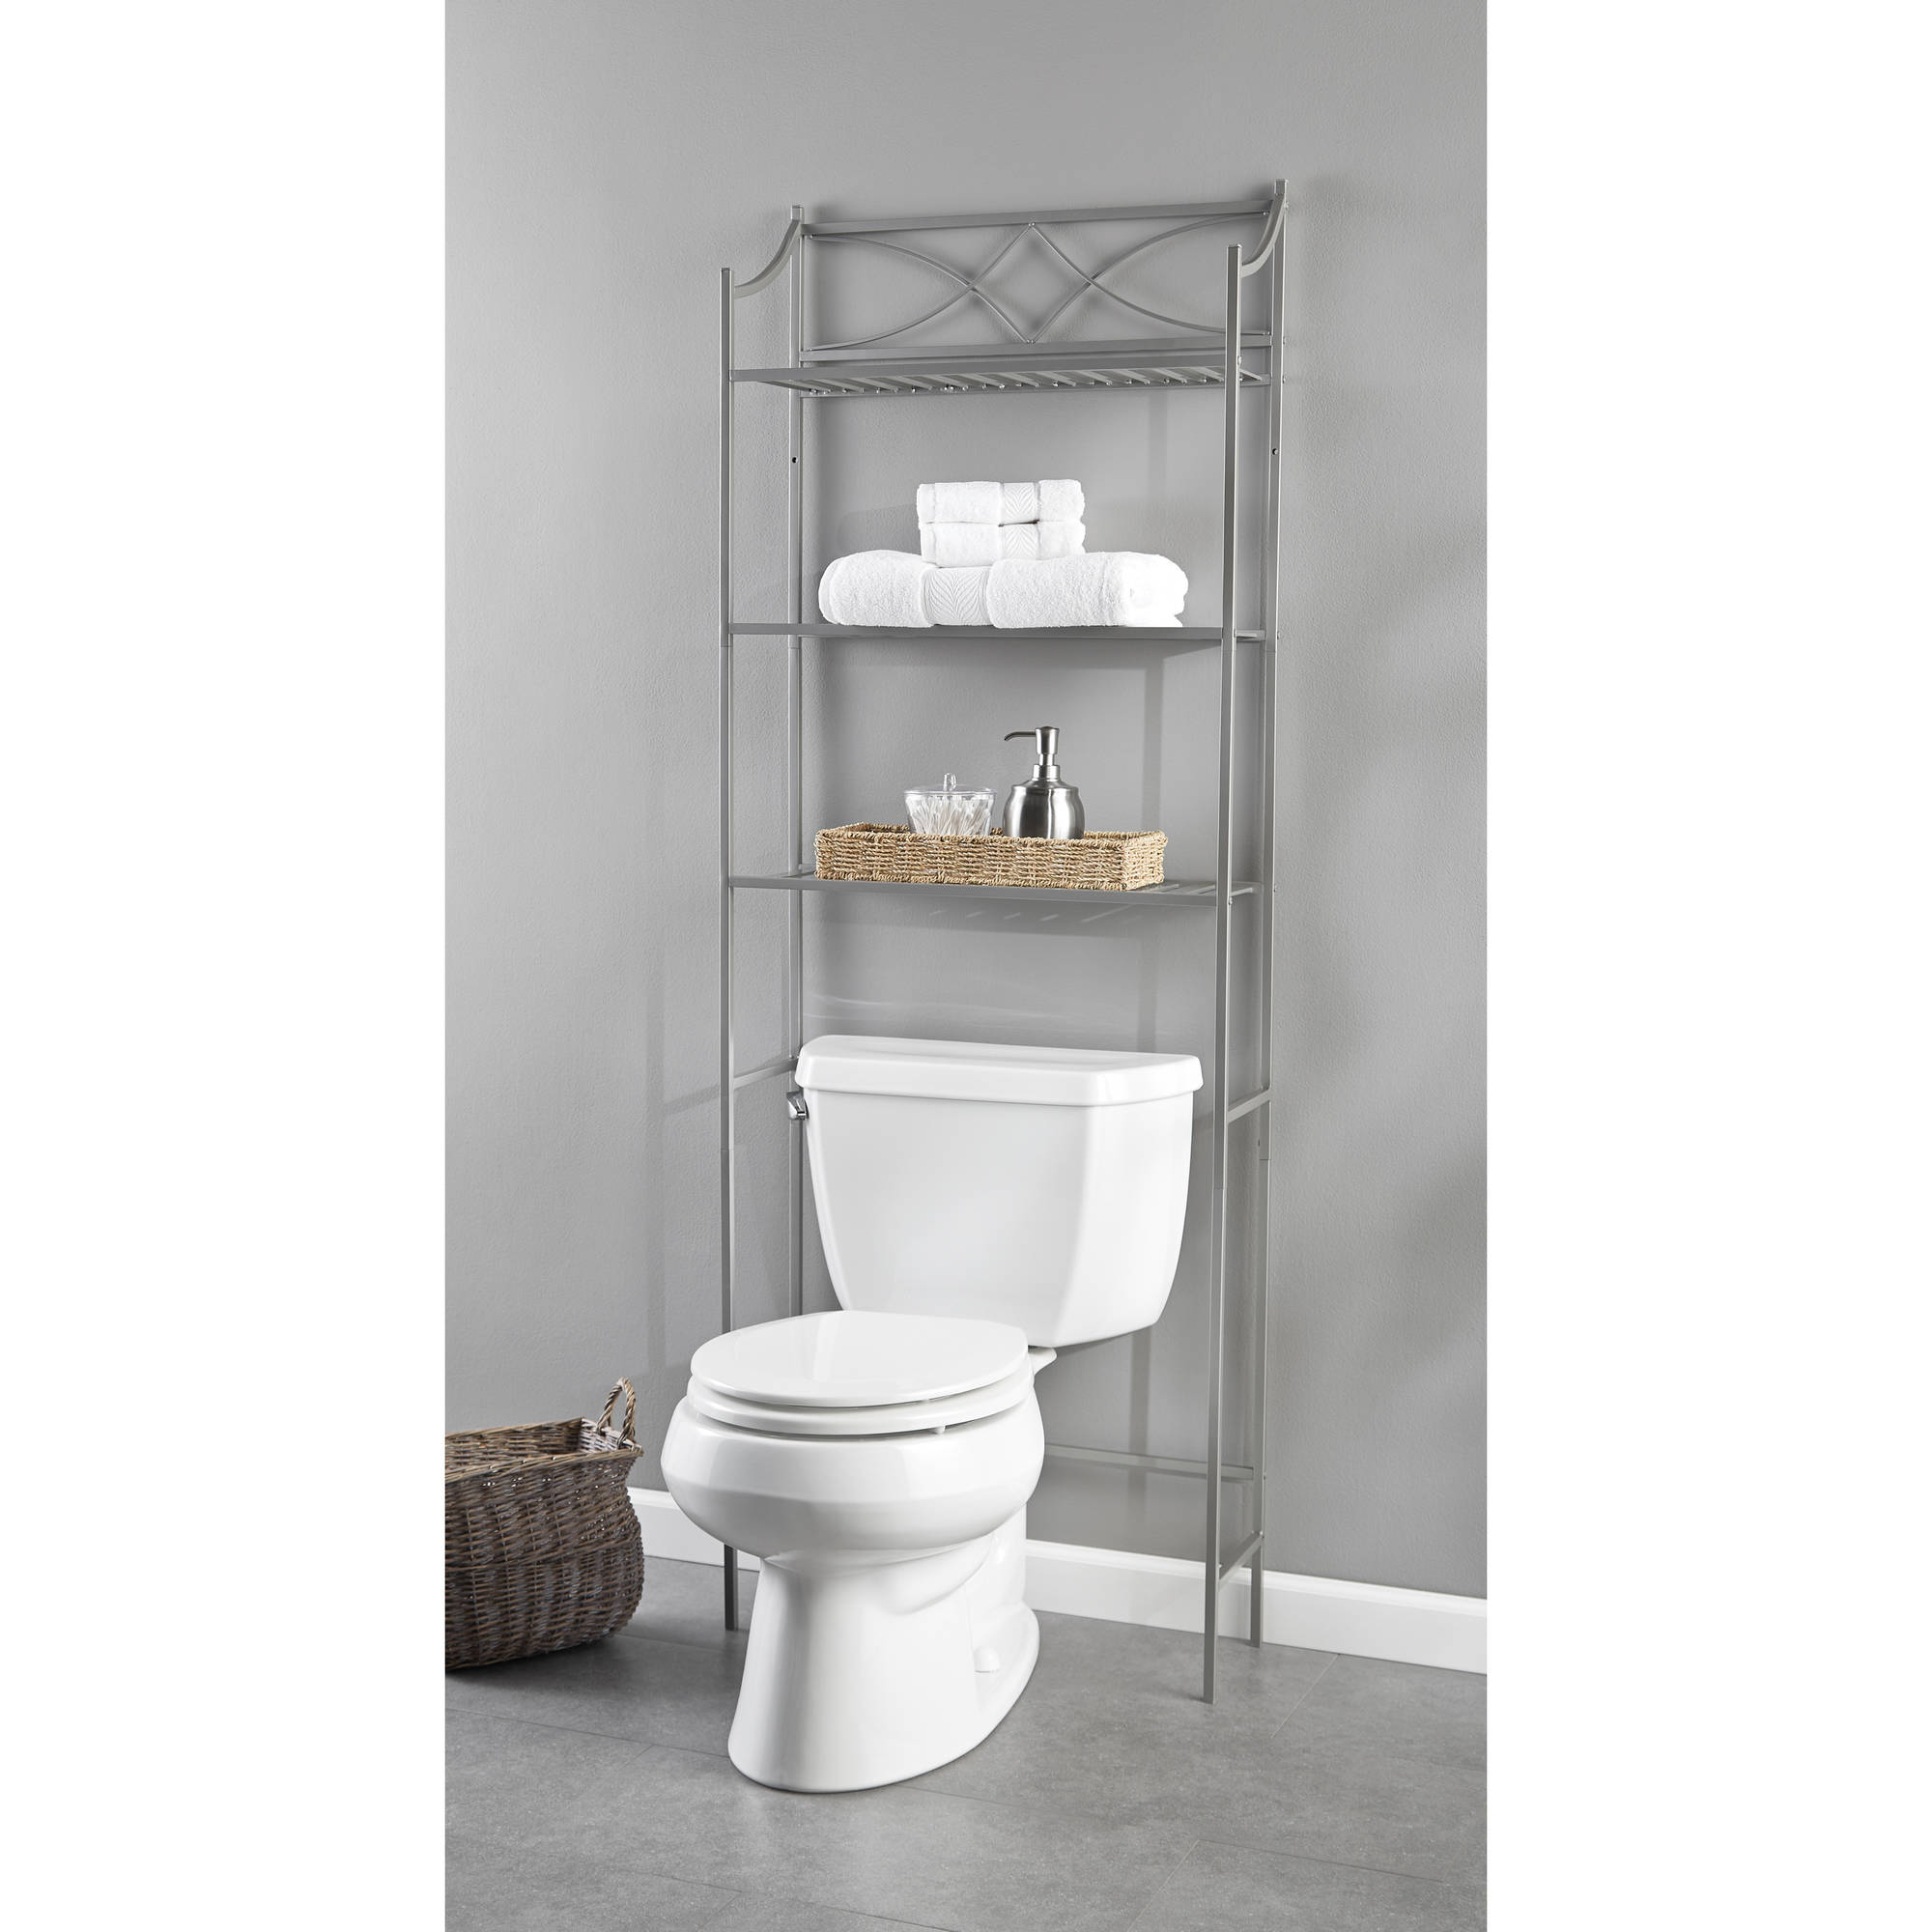 bathroom space saver white | My Web Value